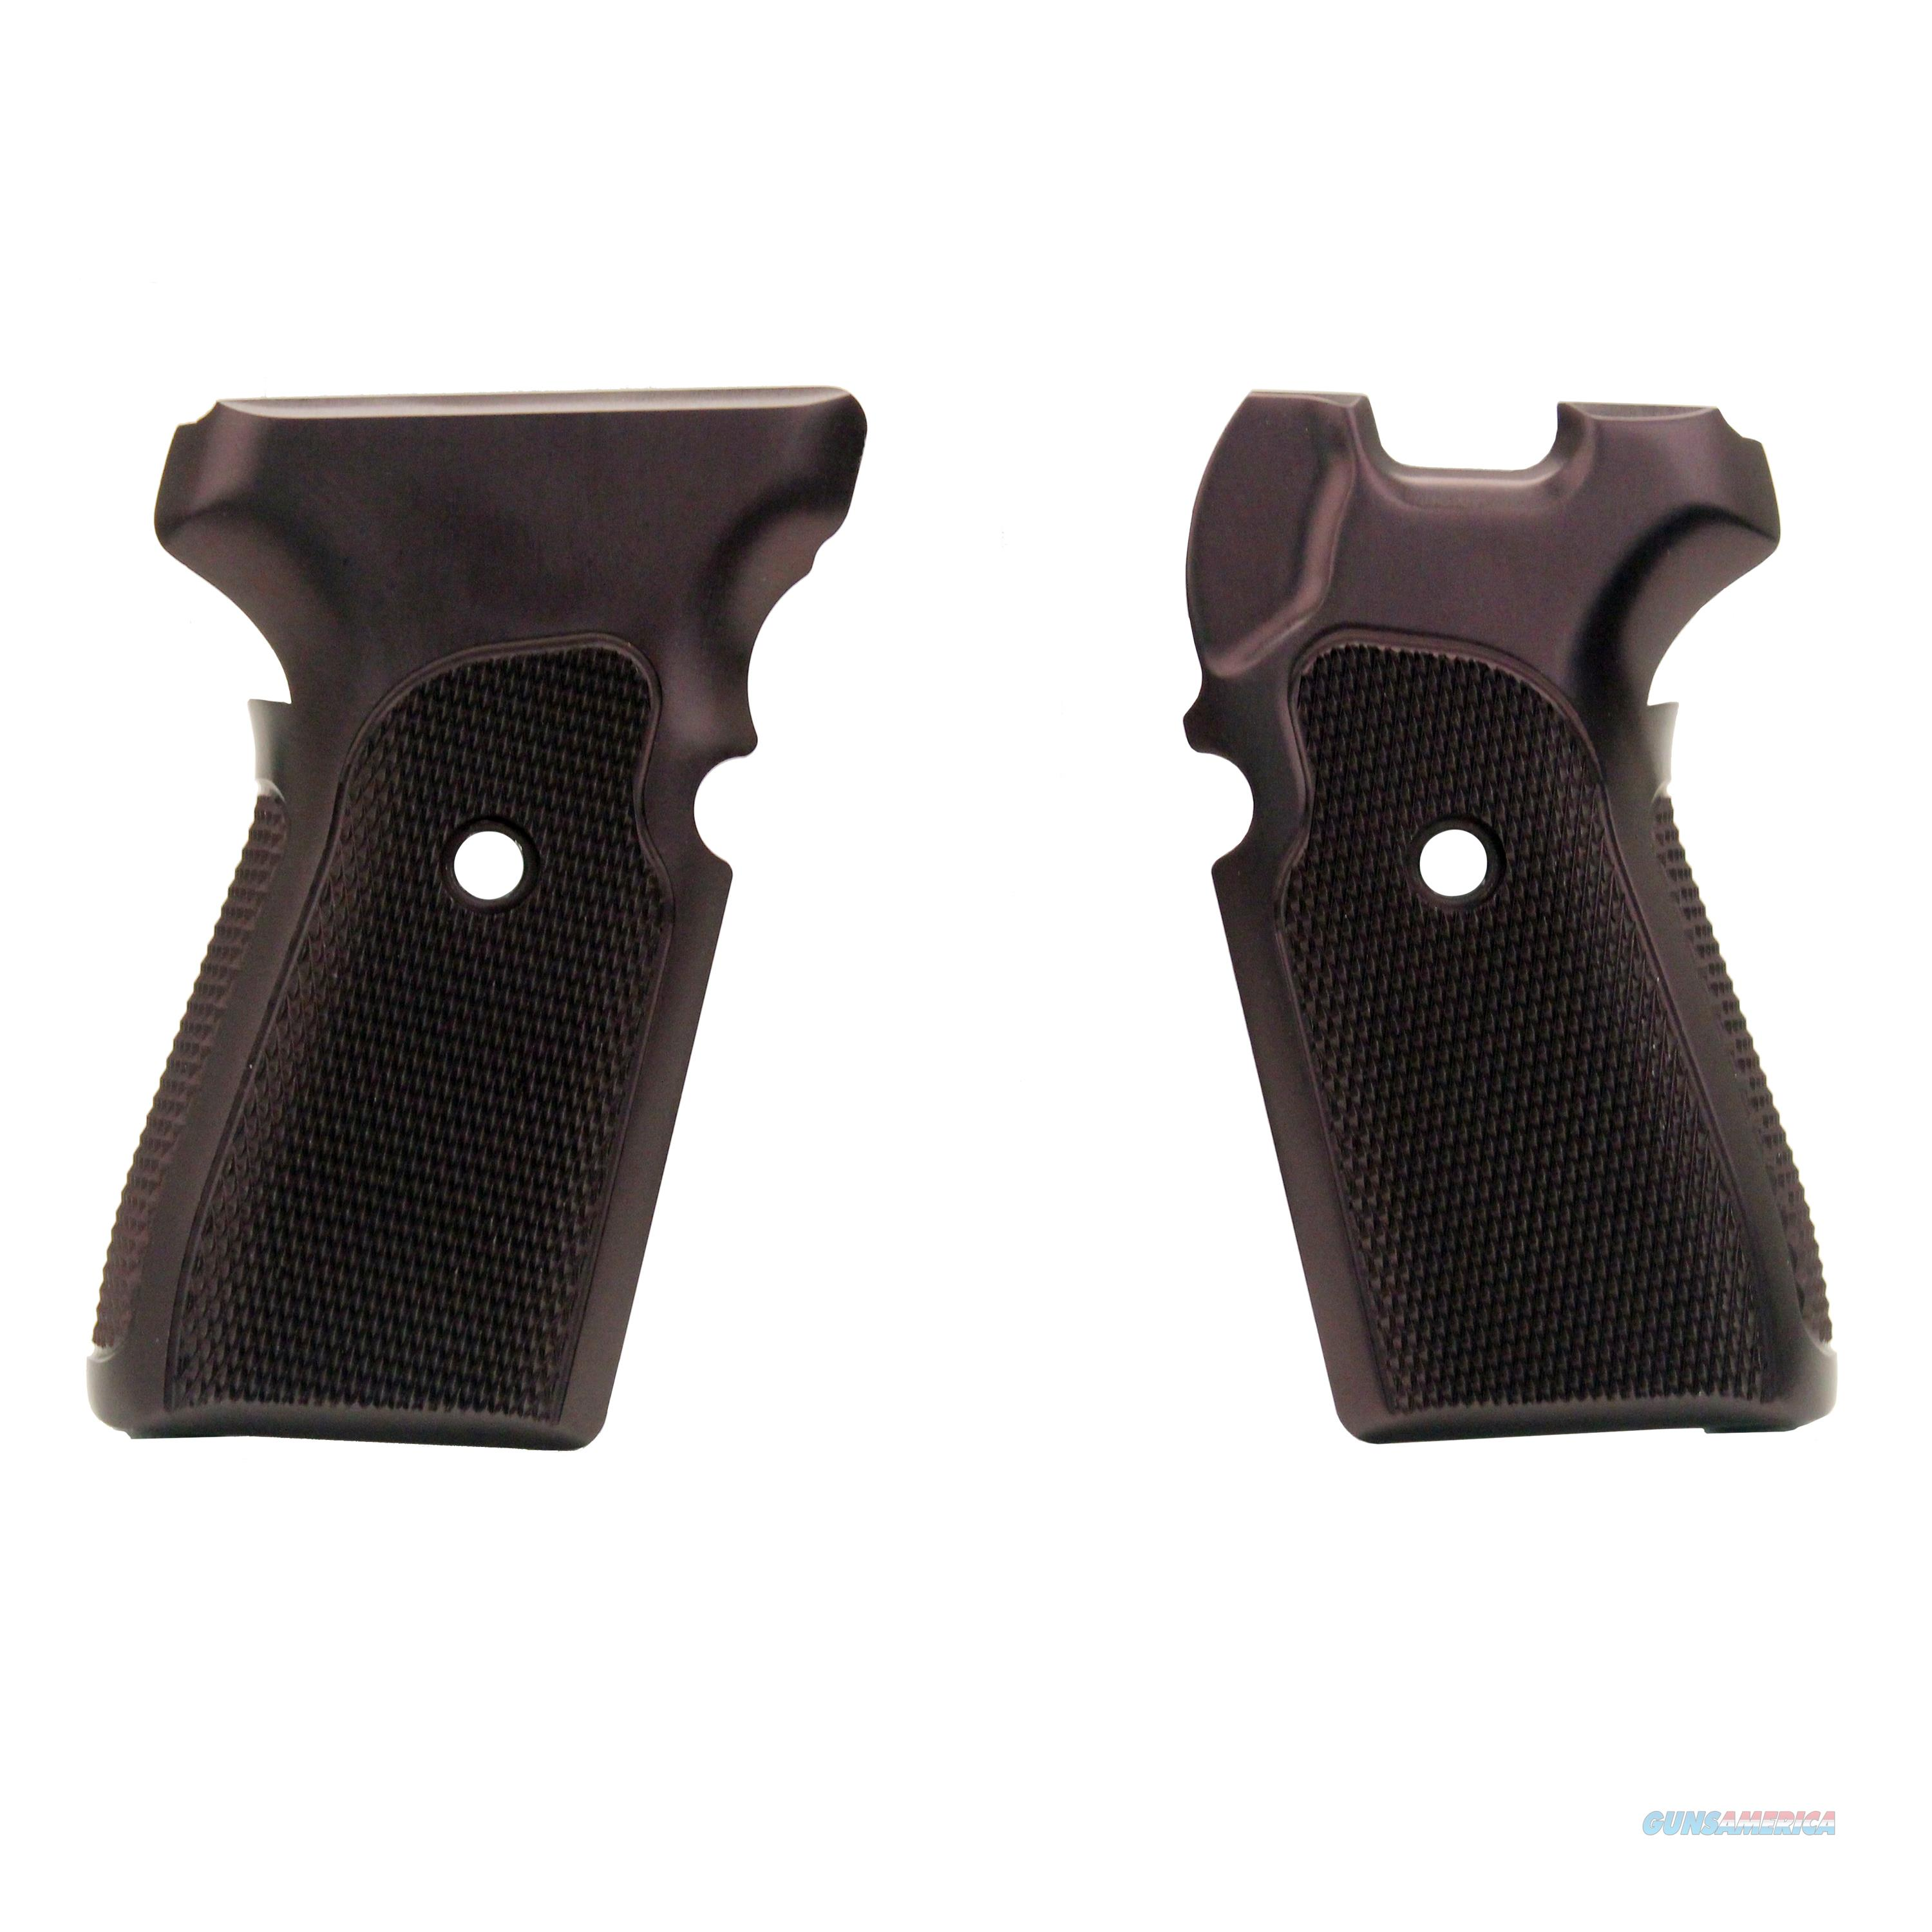 Hogue Sig P239 Grips 31176  Non-Guns > Gunstocks, Grips & Wood